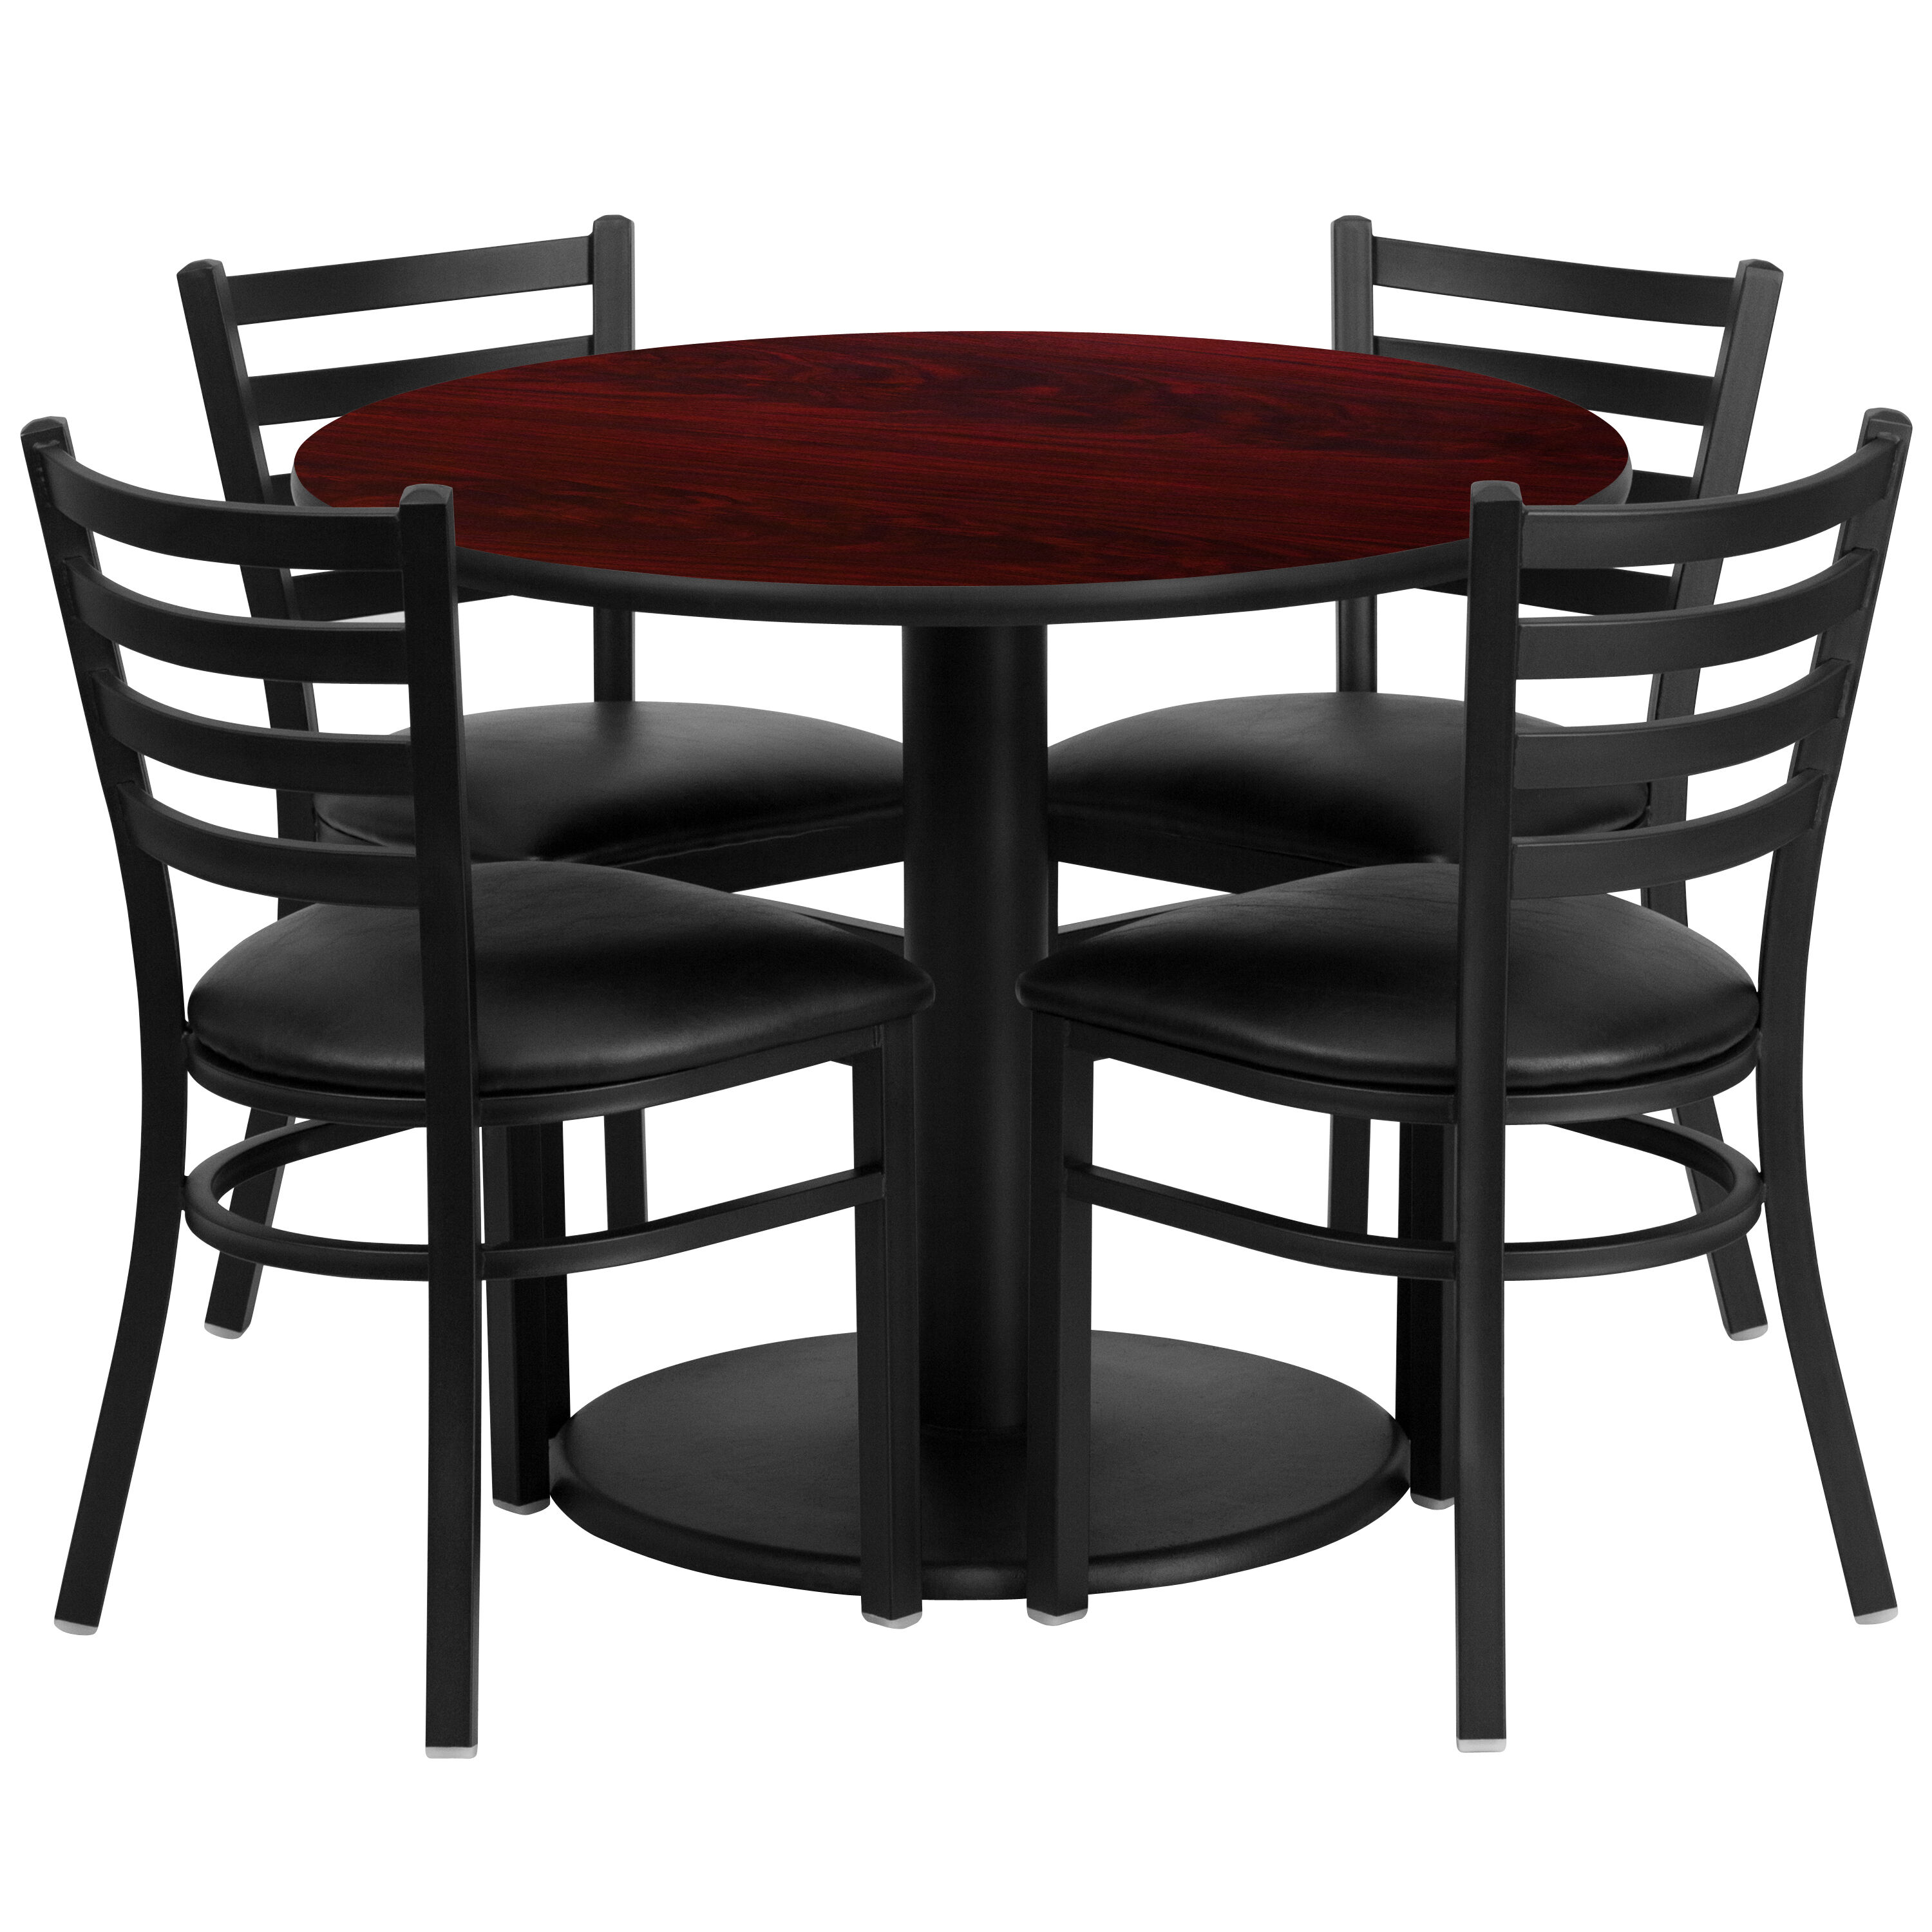 Merveilleux 36u0027u0027 Round Mahogany Laminate Table Set With Ladder Back Metal Chair And  Black Vinyl Seat, Seats 4